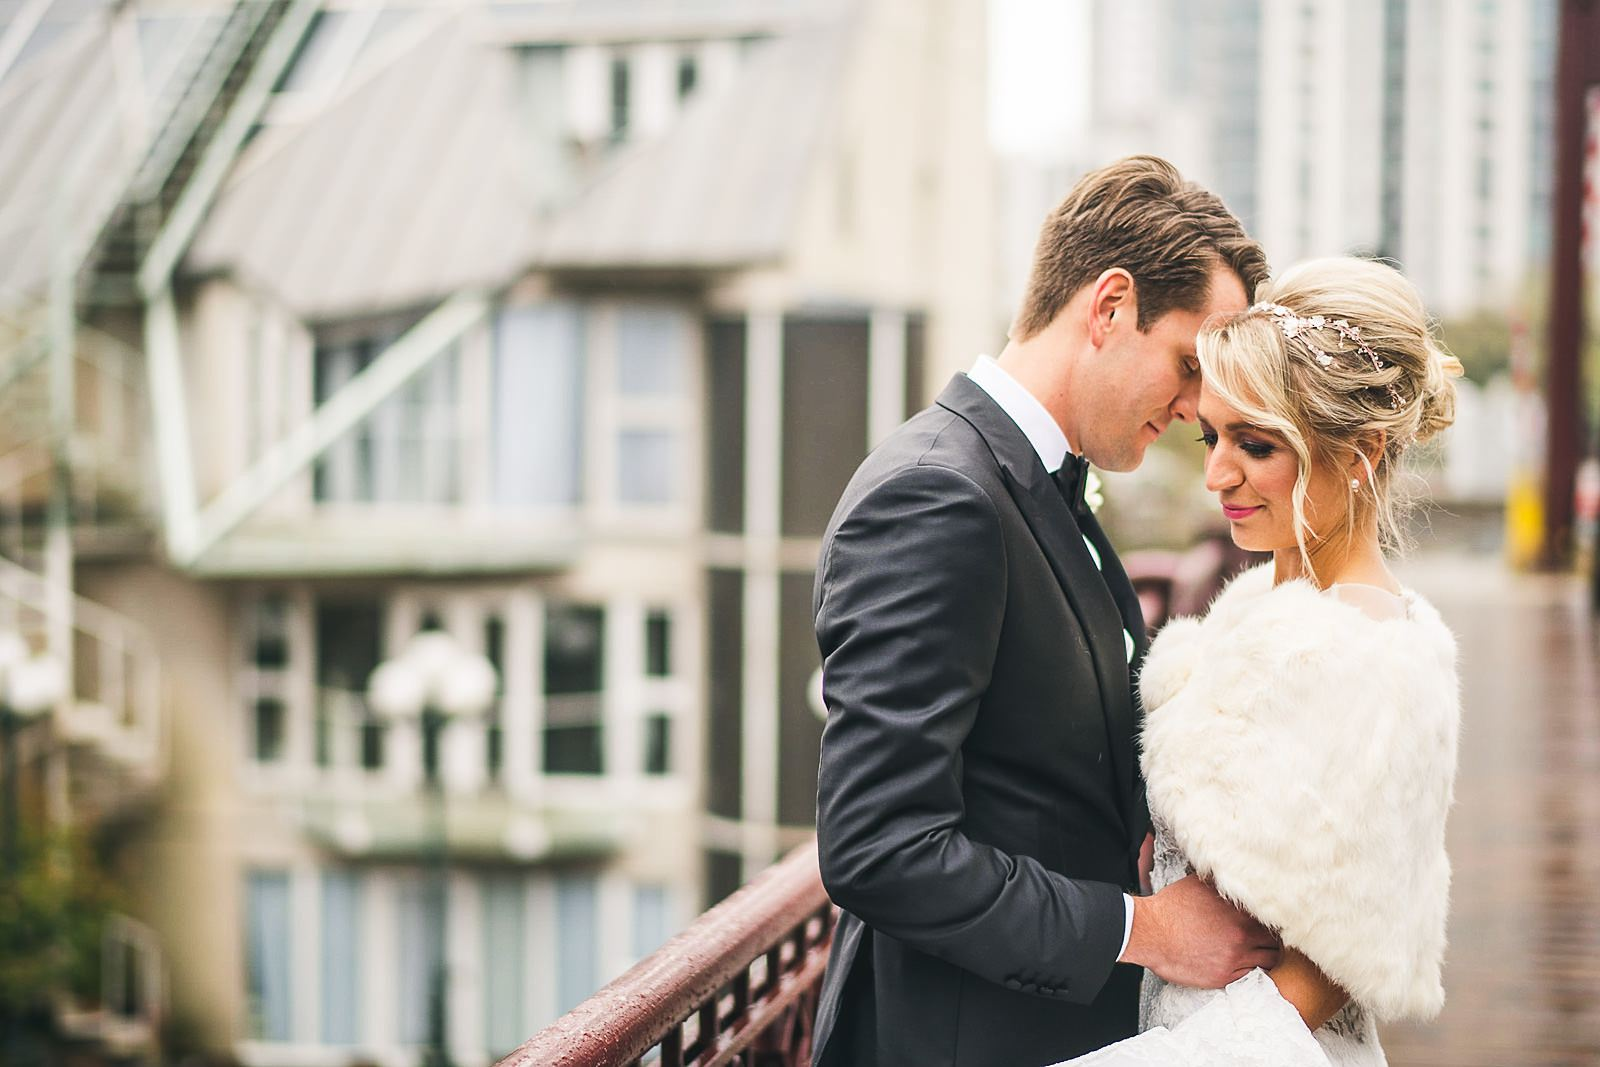 29 chicago bridge wedding photo inspiration - Ivy Room Wedding // Audrey + Tyler